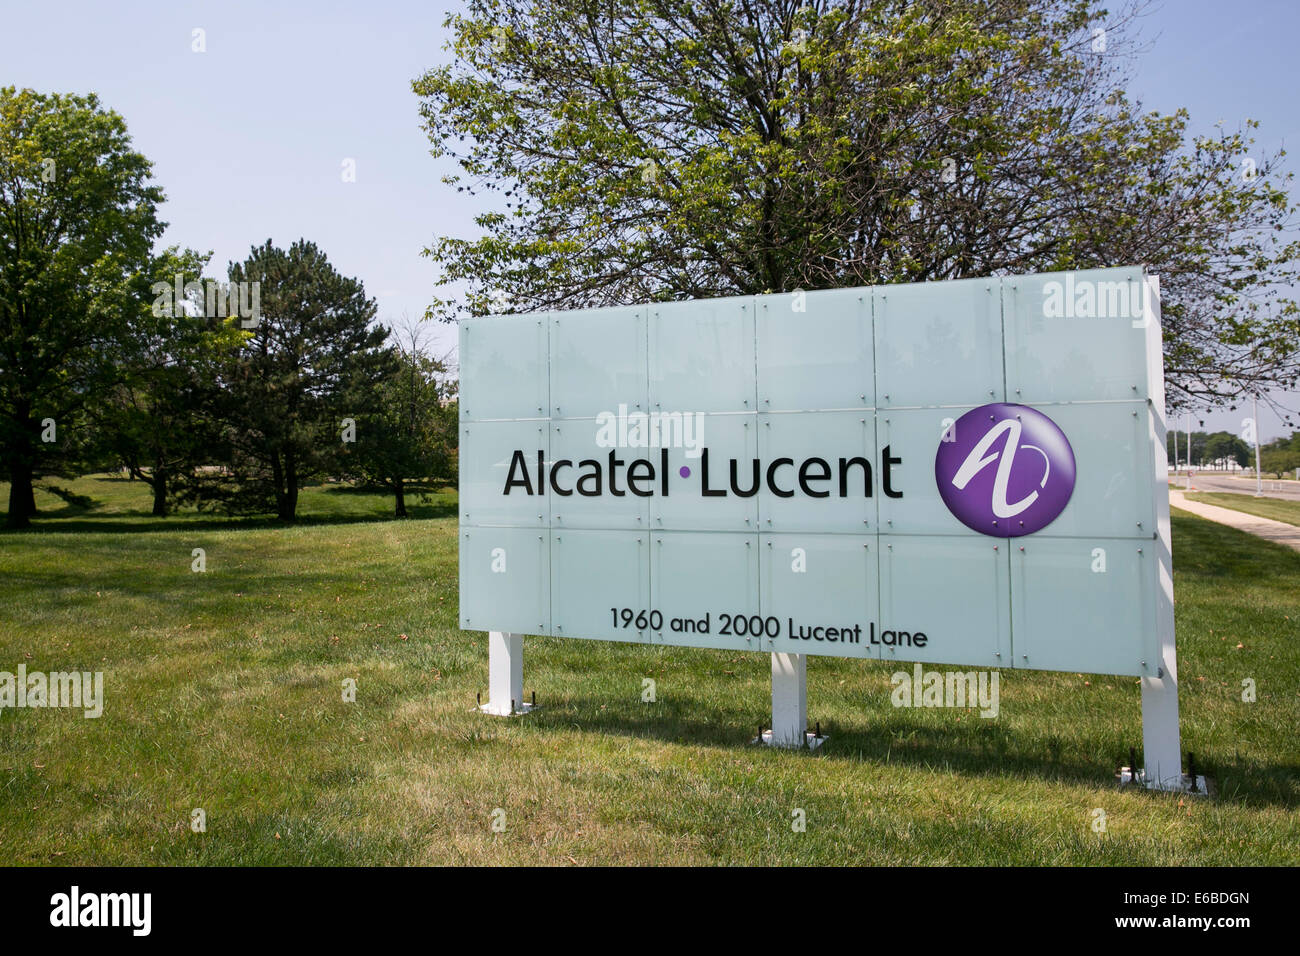 The headquarters of Alcatel-Lucent in Naperville, Illinois. - Stock Image